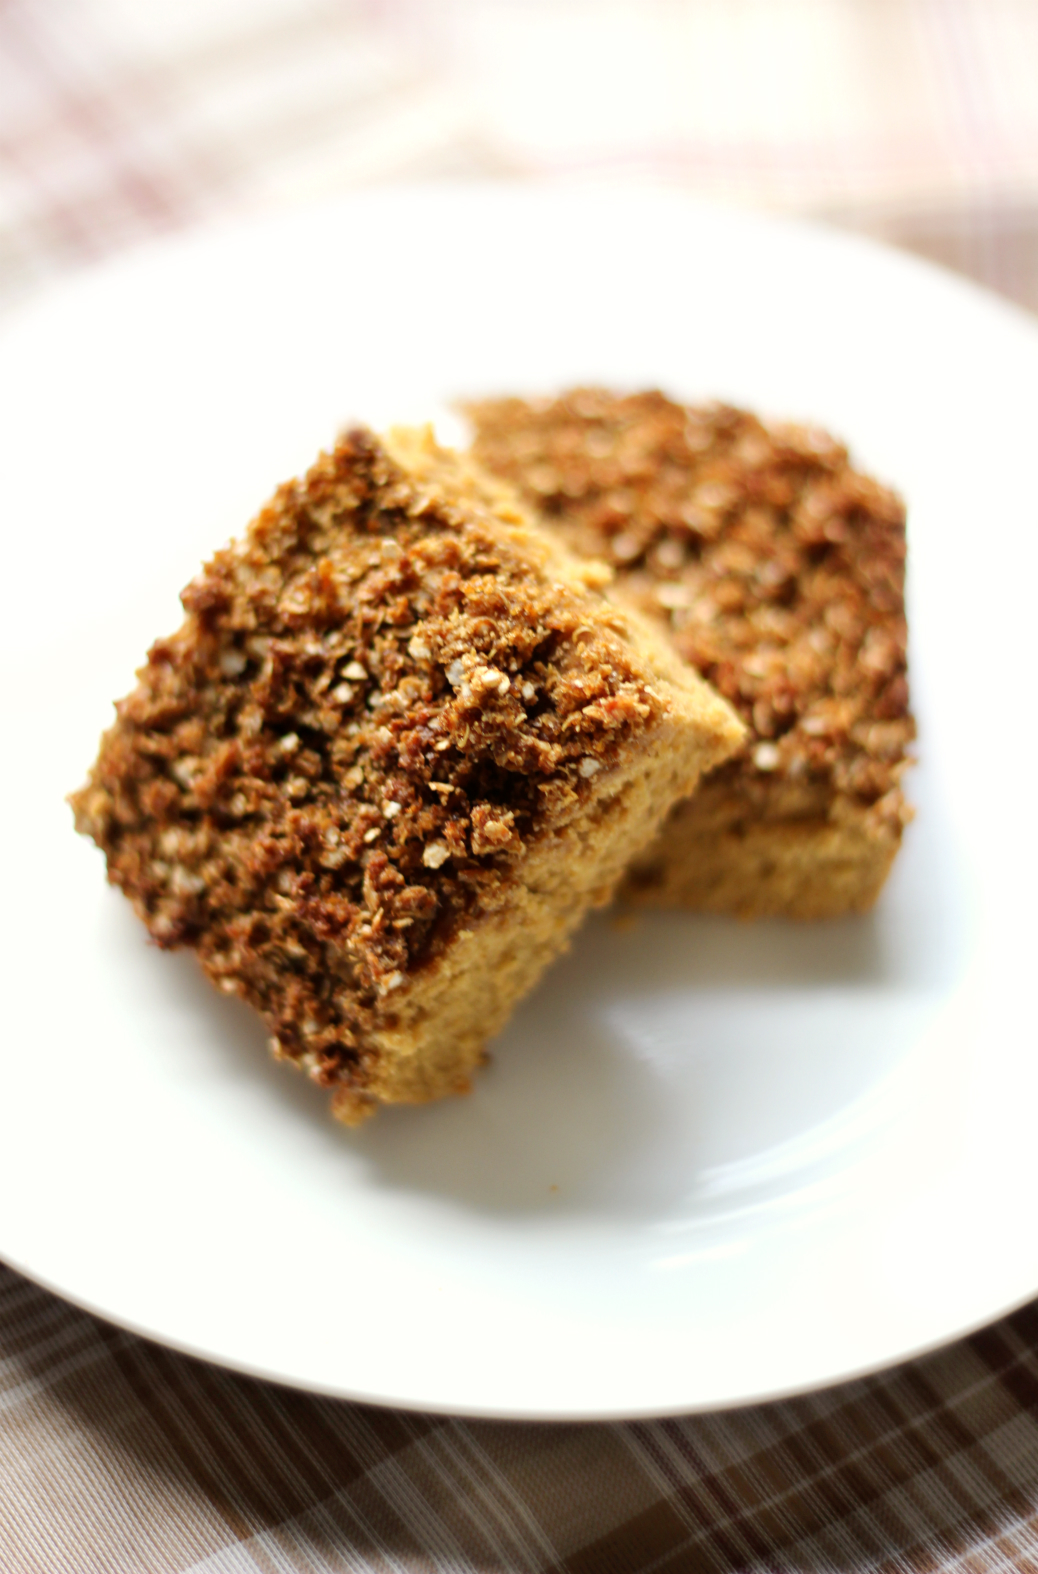 Gingerbread Quinoa Coffee Cake | Strength and Sunshine @RebeccaGF666 Get cozy with some coffee and a slice of this gingerbread quinoa coffee cake! A warm holiday flavor with the protein of quinoa, gluten-free and vegan, this healthy coffee cake is perfect for a winter breakfast, a weekend brunch, or healthy holiday dessert!